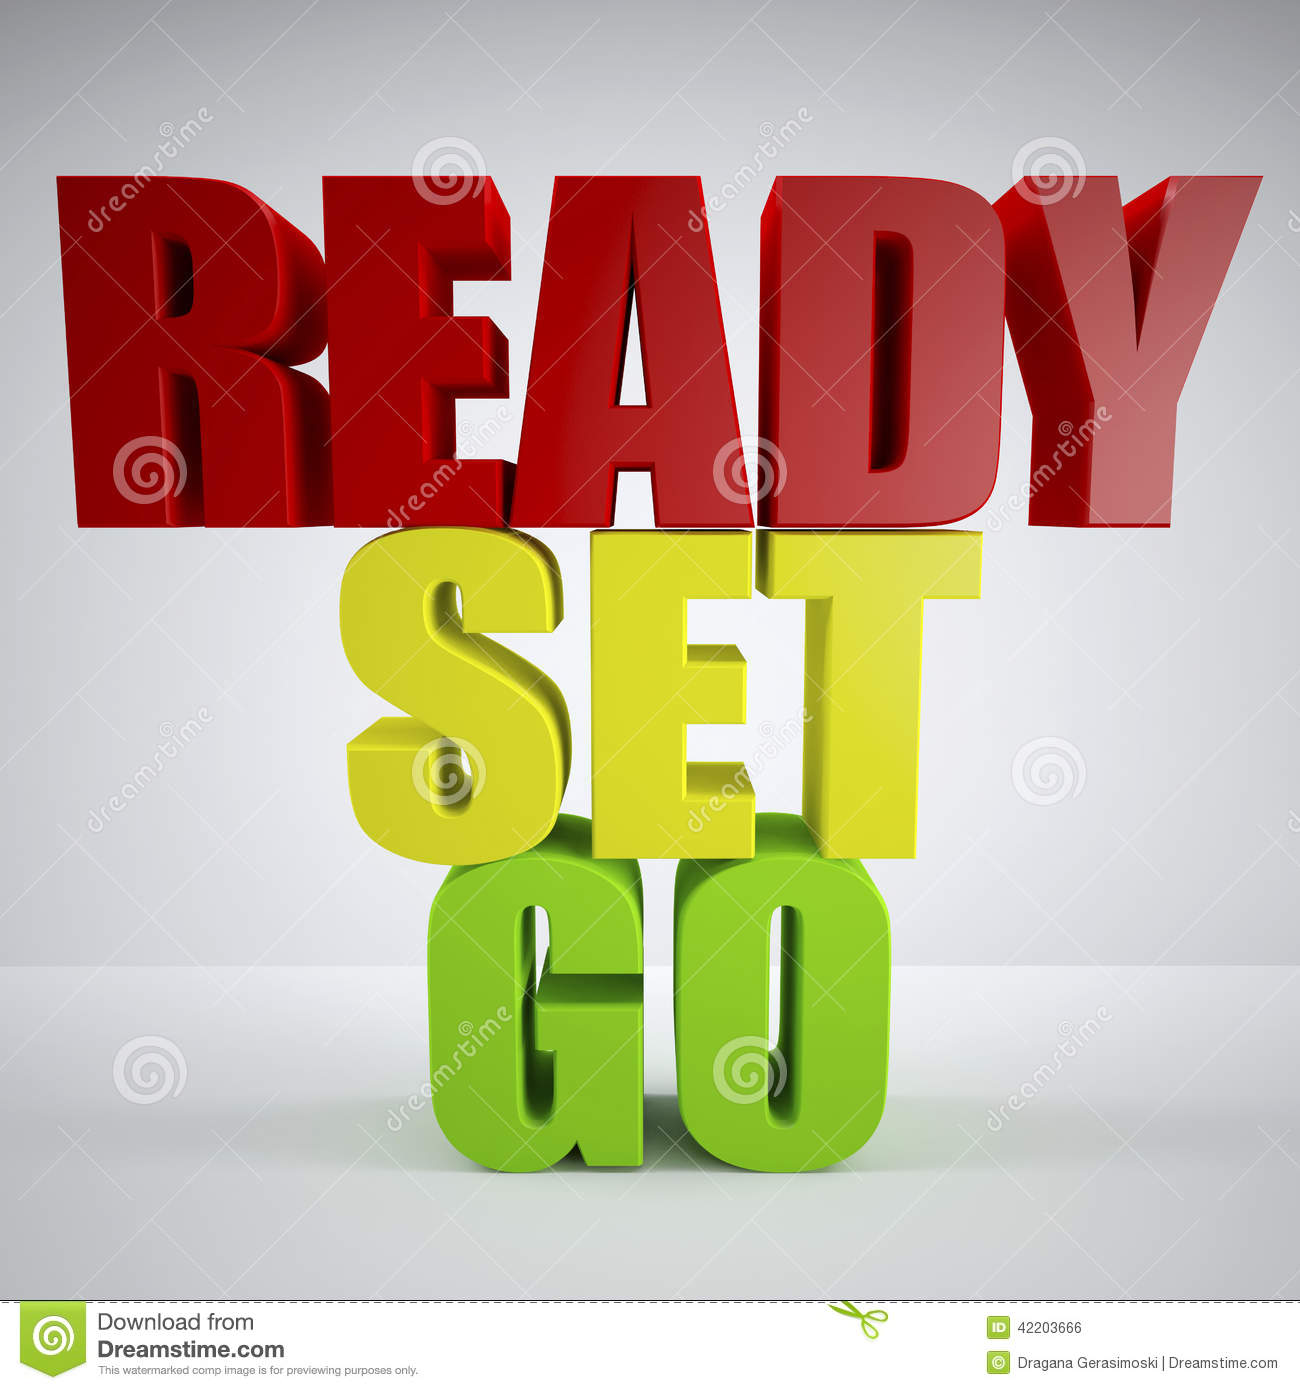 Ready set go stock illustration image 42203666 for Ready to go images